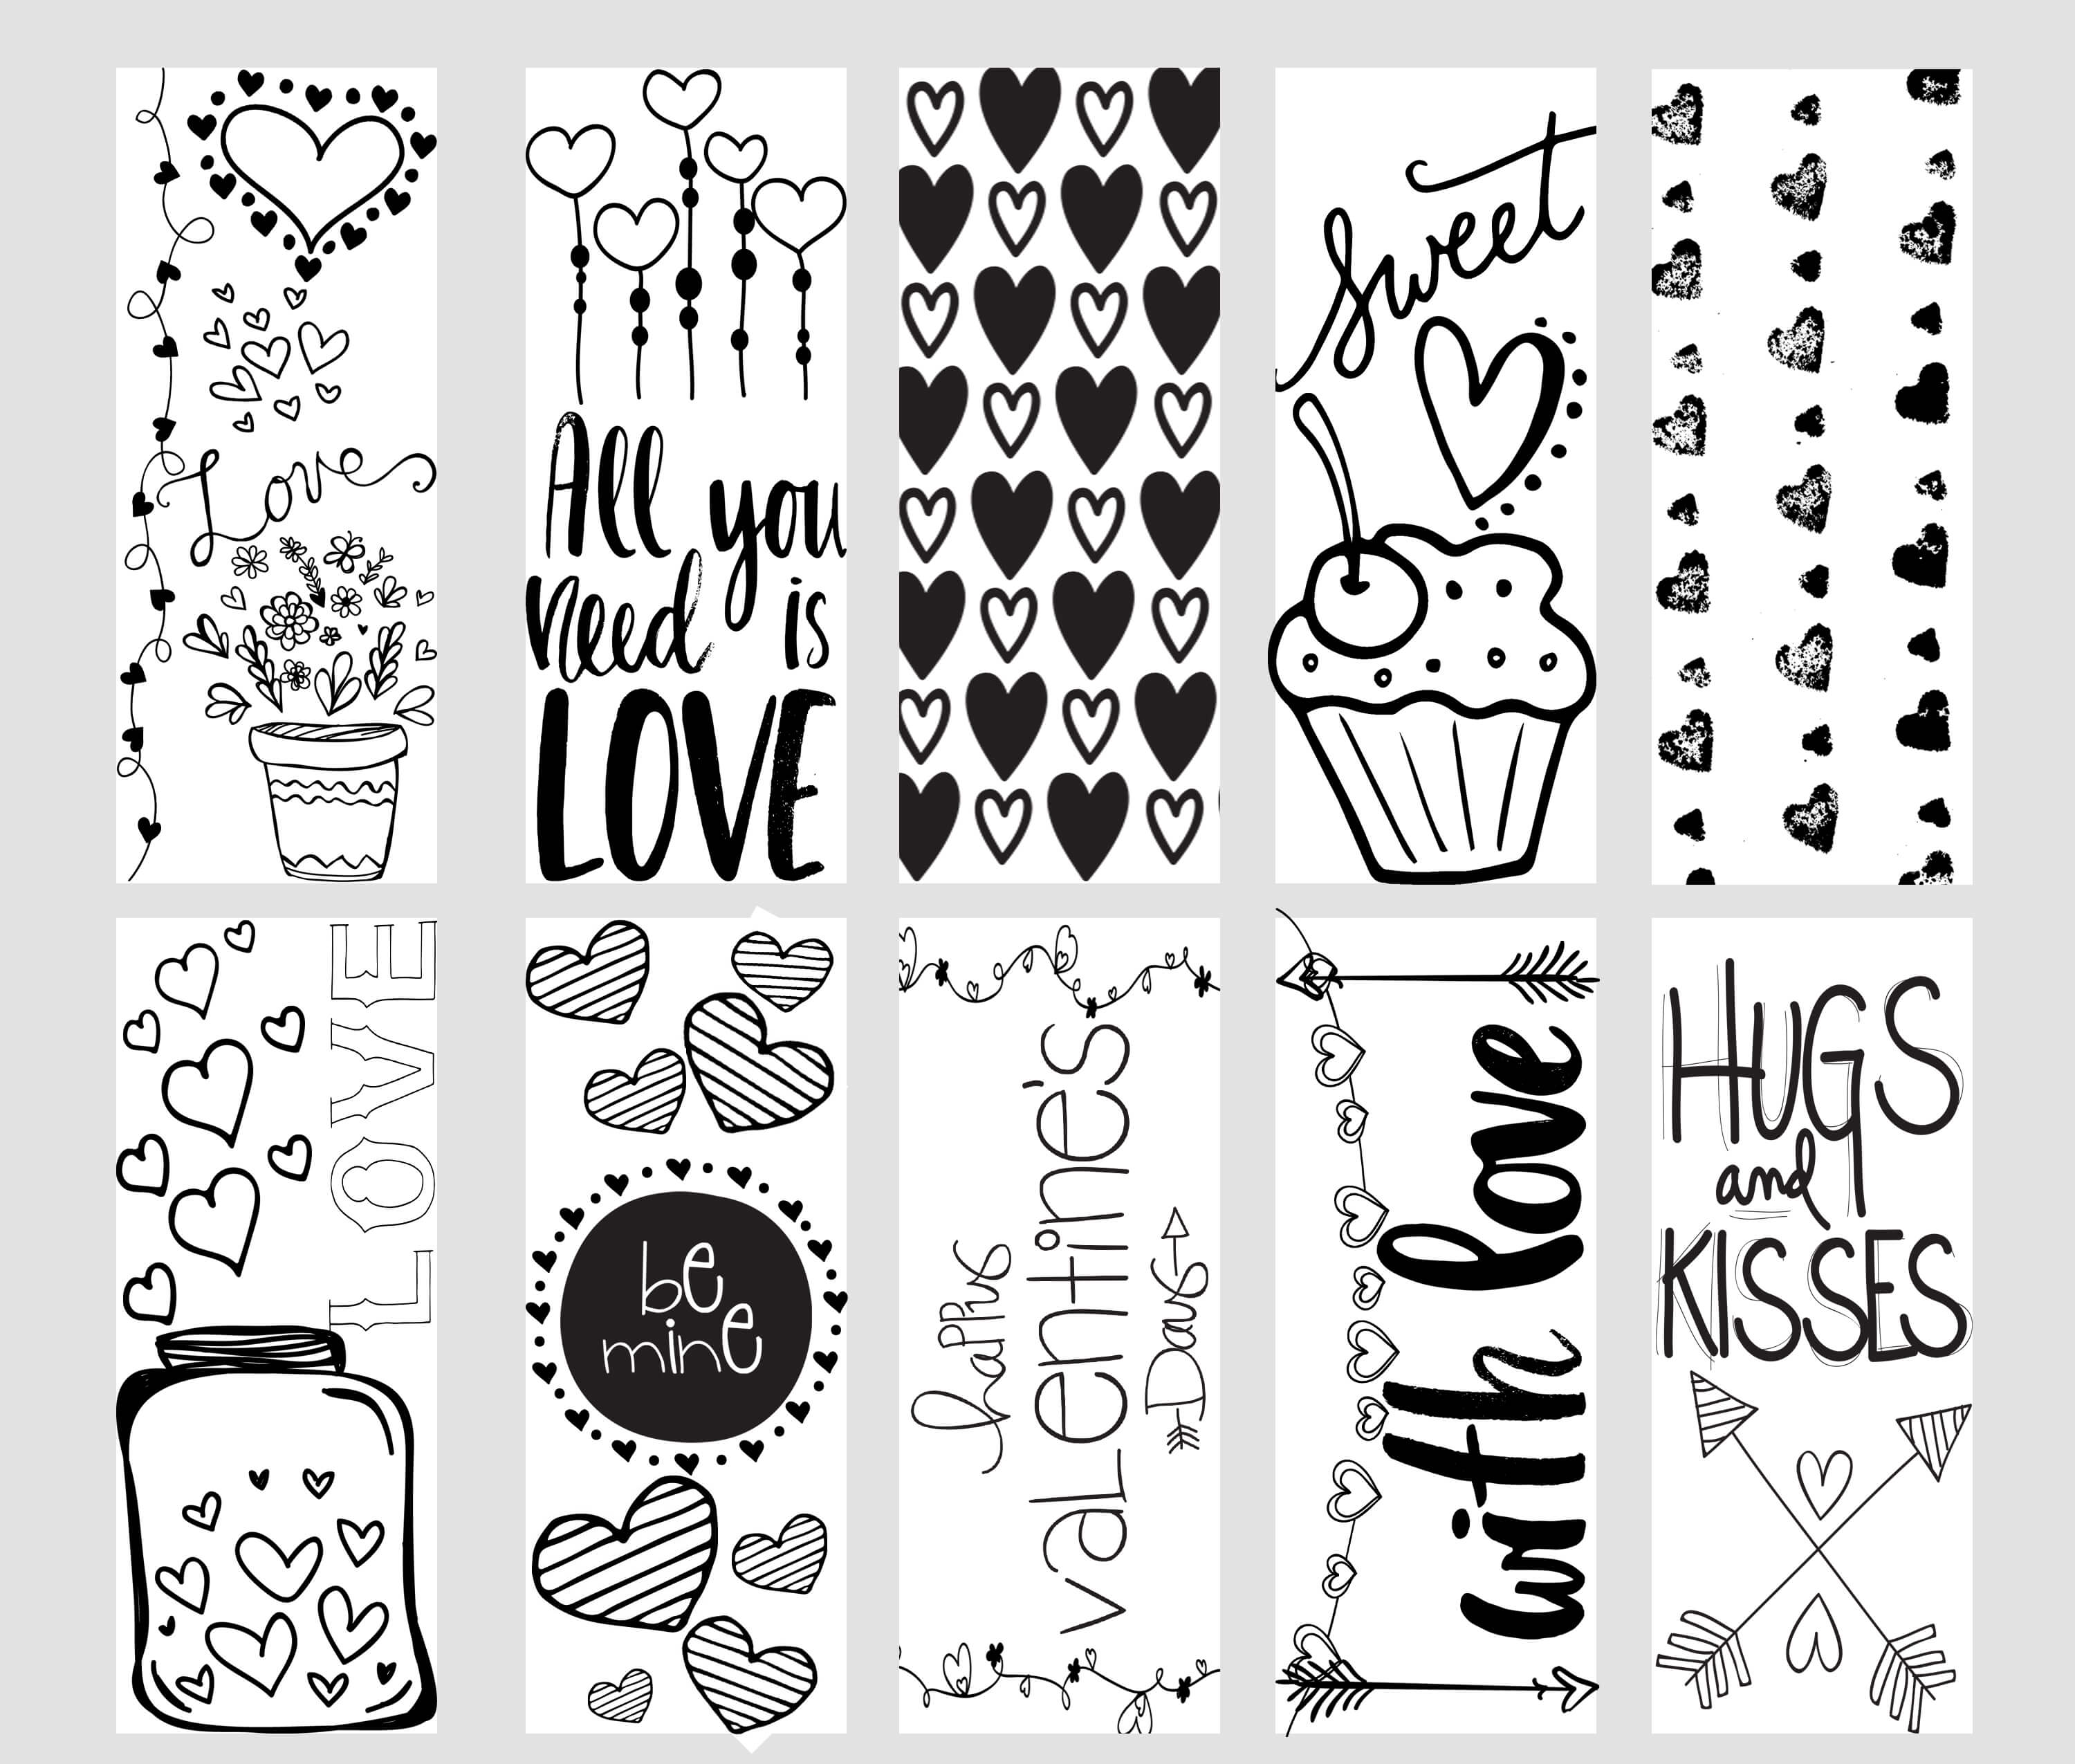 photograph regarding Valentine Printable titled Valentine Printable Coloring Site Bookmarks - Kleinworth Co